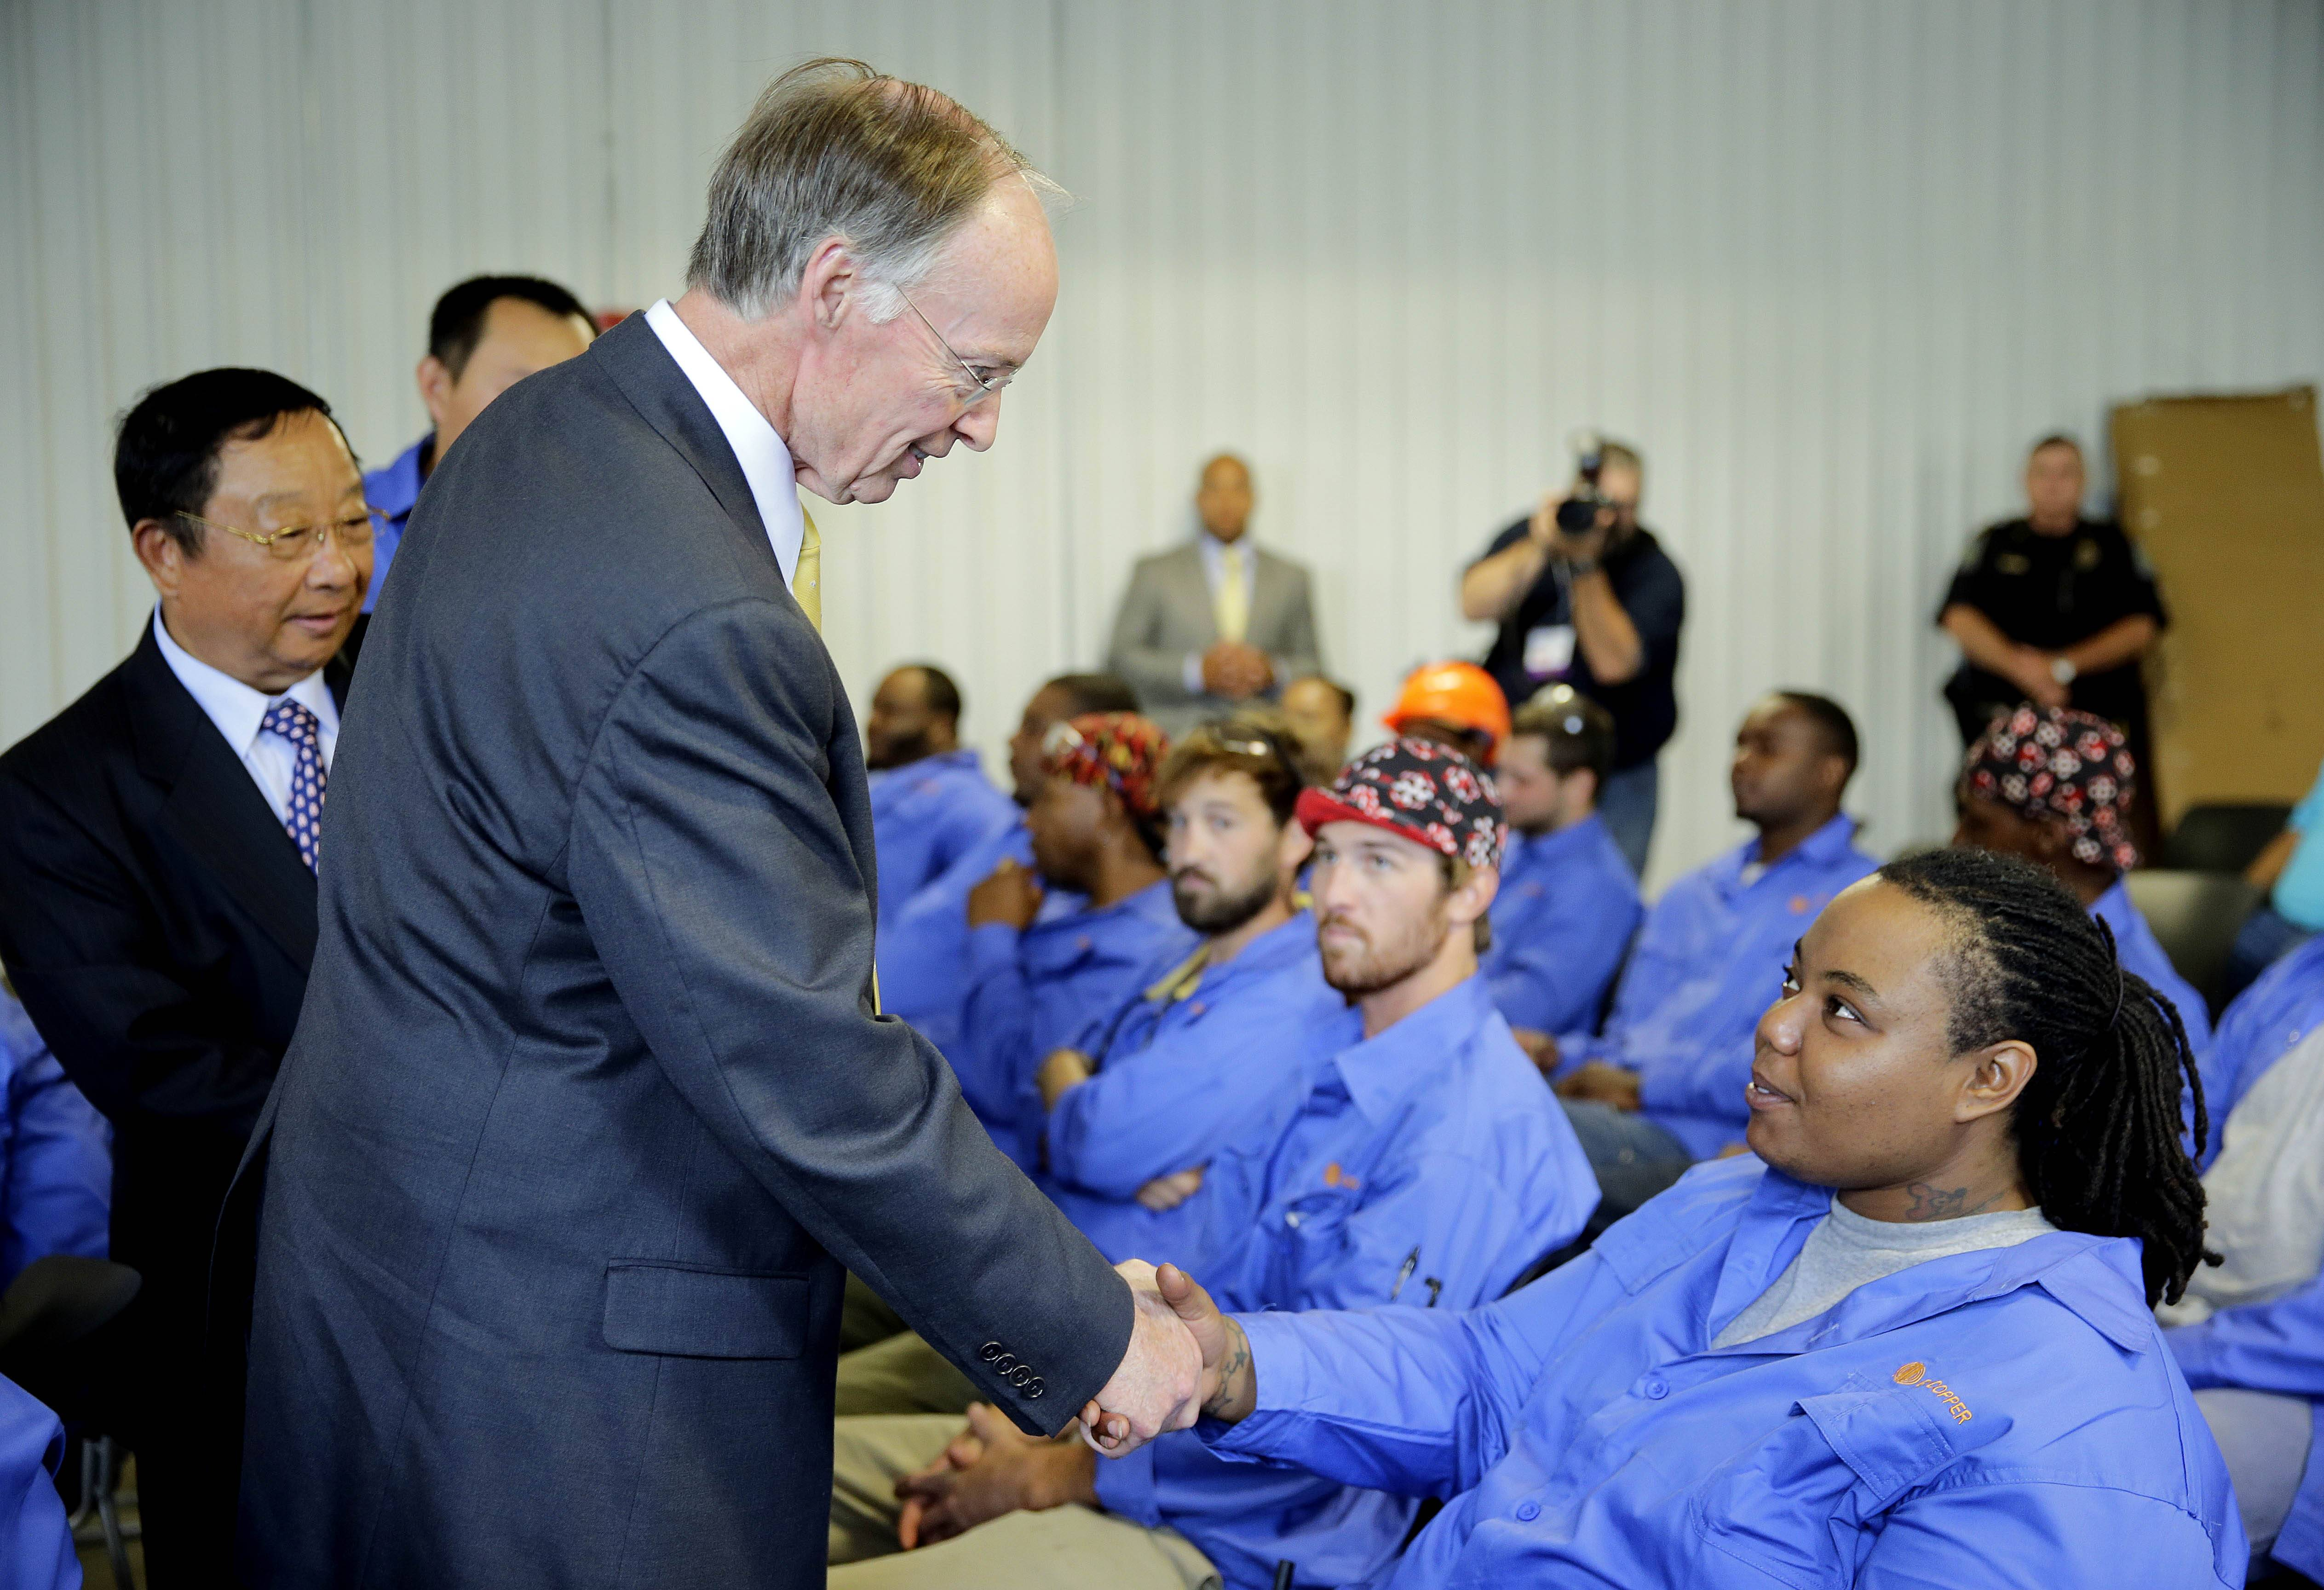 Alabama Gov. Robert Bentley, followed by Golden Dragon Copper USA Chairman Changjie Li, left, meets the employees of Golden Dragon Copper USA before the company's grand opening ceremony in Pine Hill, Ala. Golden Dragon, the first company Bentley recruited to Alabama after being elected, will employ 300 new full-time employees in rural Wilcox County.